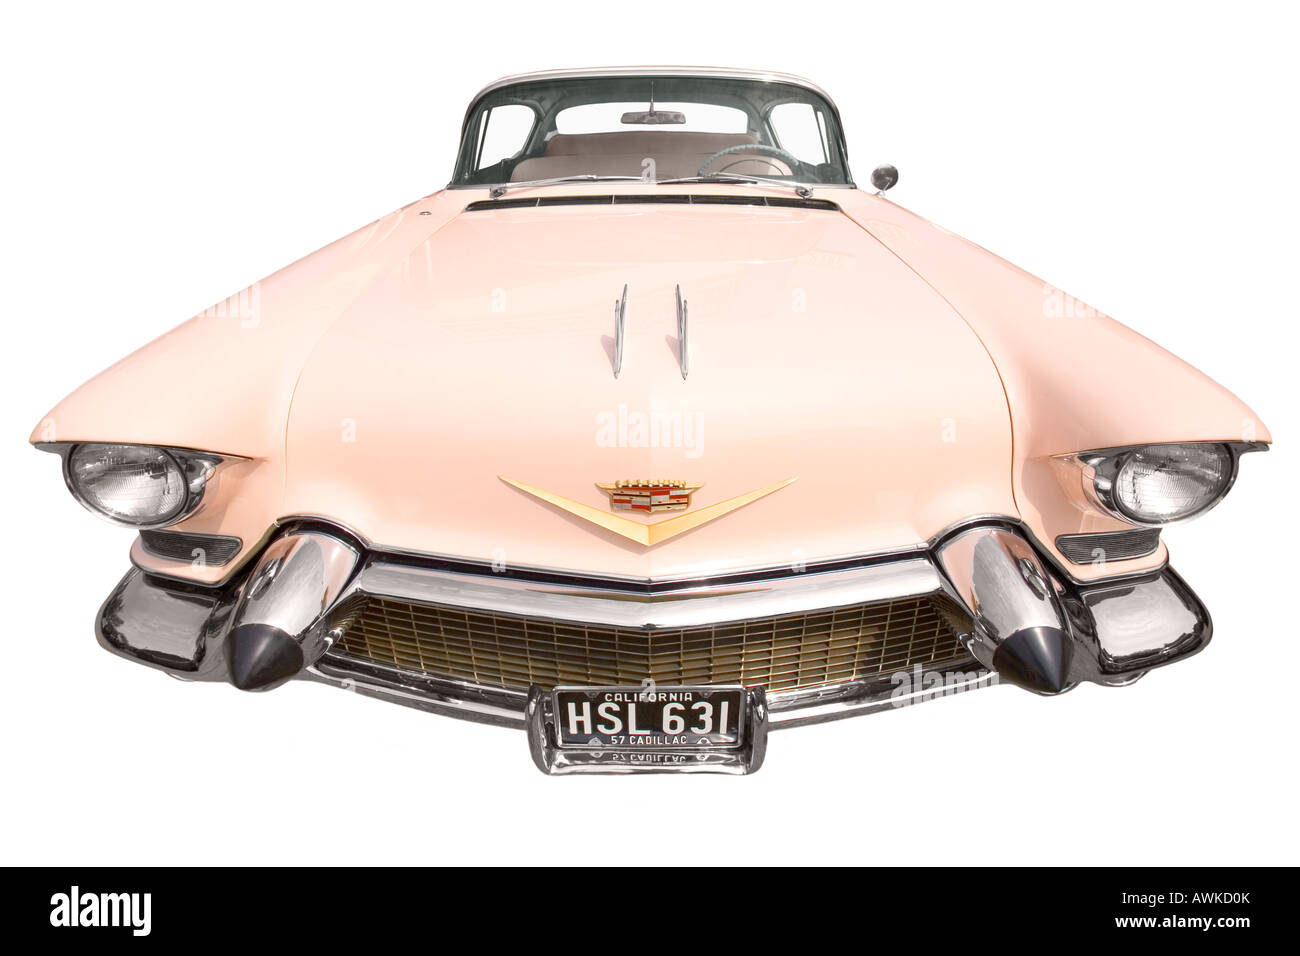 Close focus wide angle view of a retro pink Cadillac on a pure white background. - Stock Image